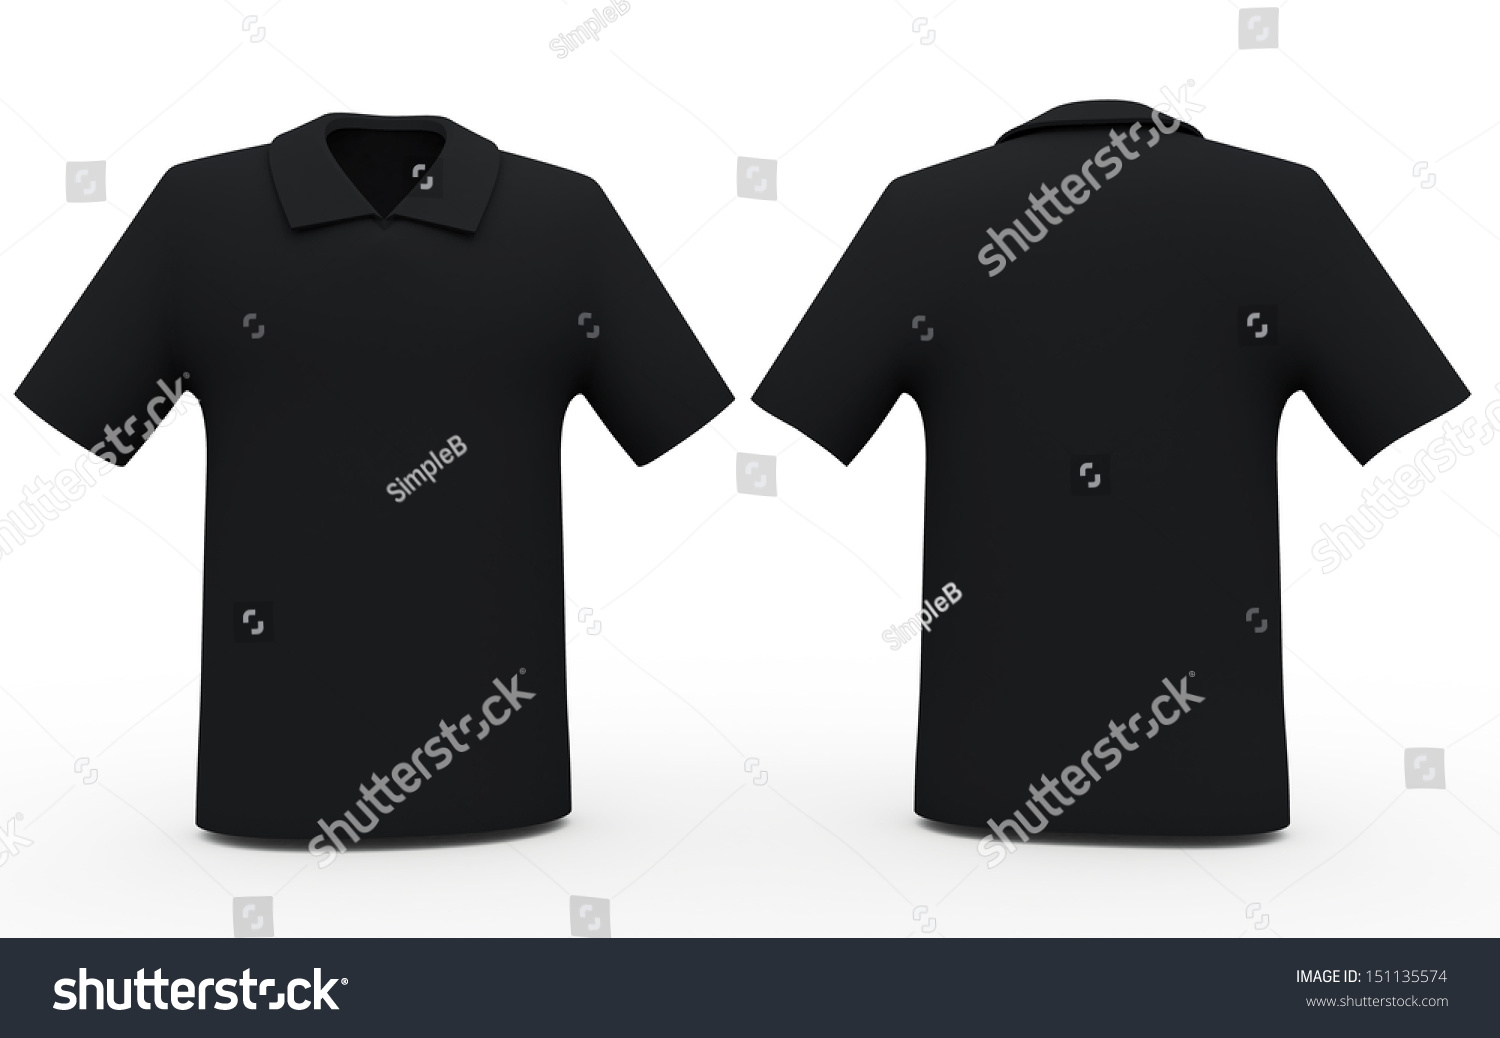 Black t shirt back and front - 3d Black Color Sport Shirts Front And Back Sides Blank Template In Isolated Background Clipping Paths